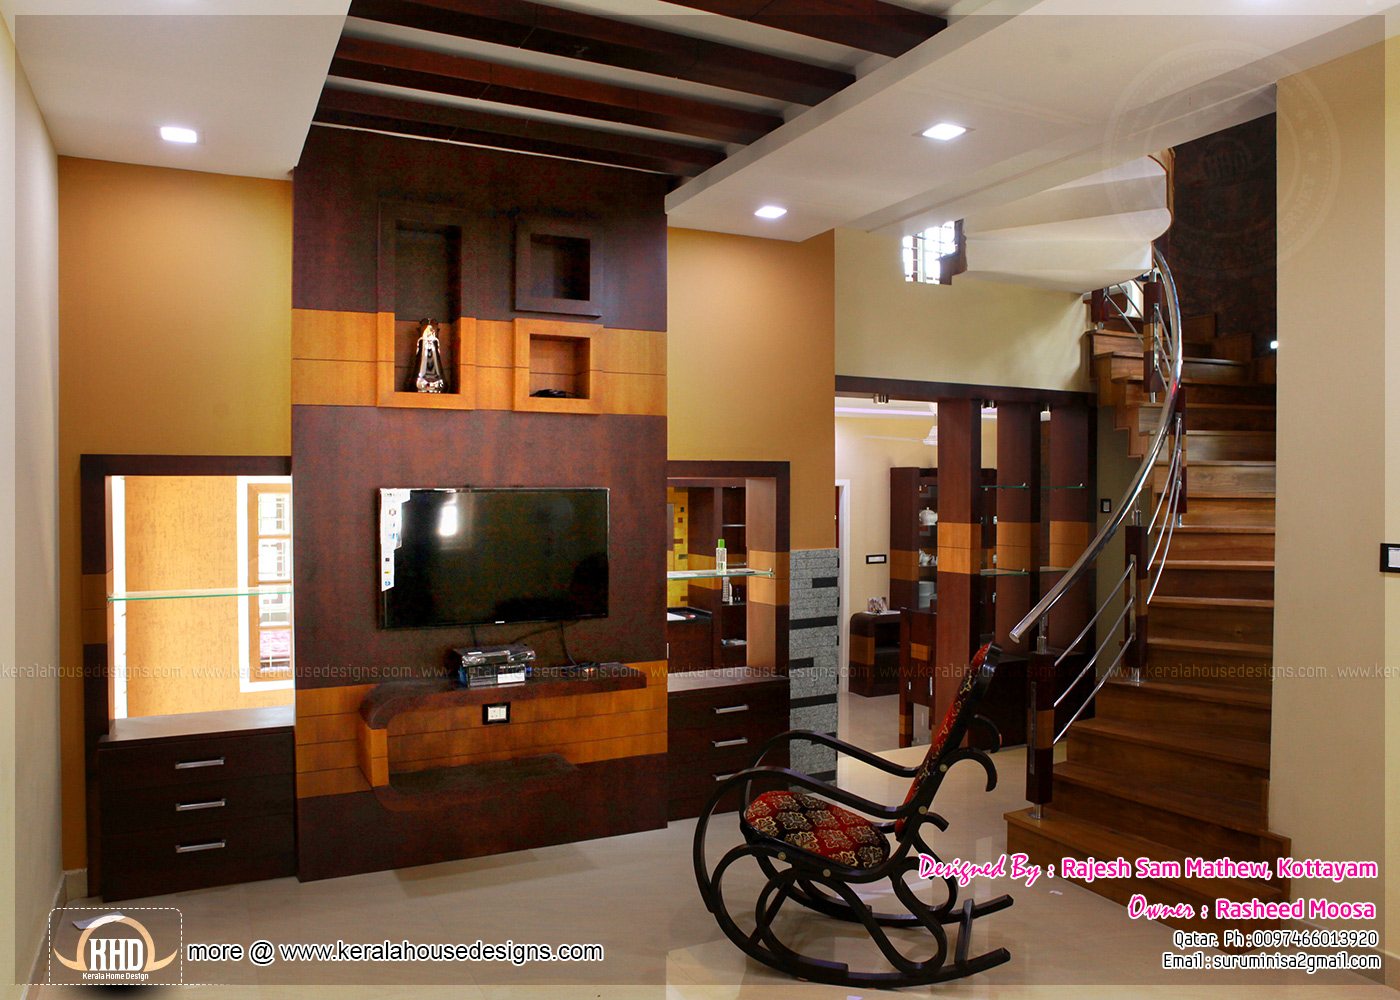 Kerala interior design with photos kerala home design for Good interior design for home